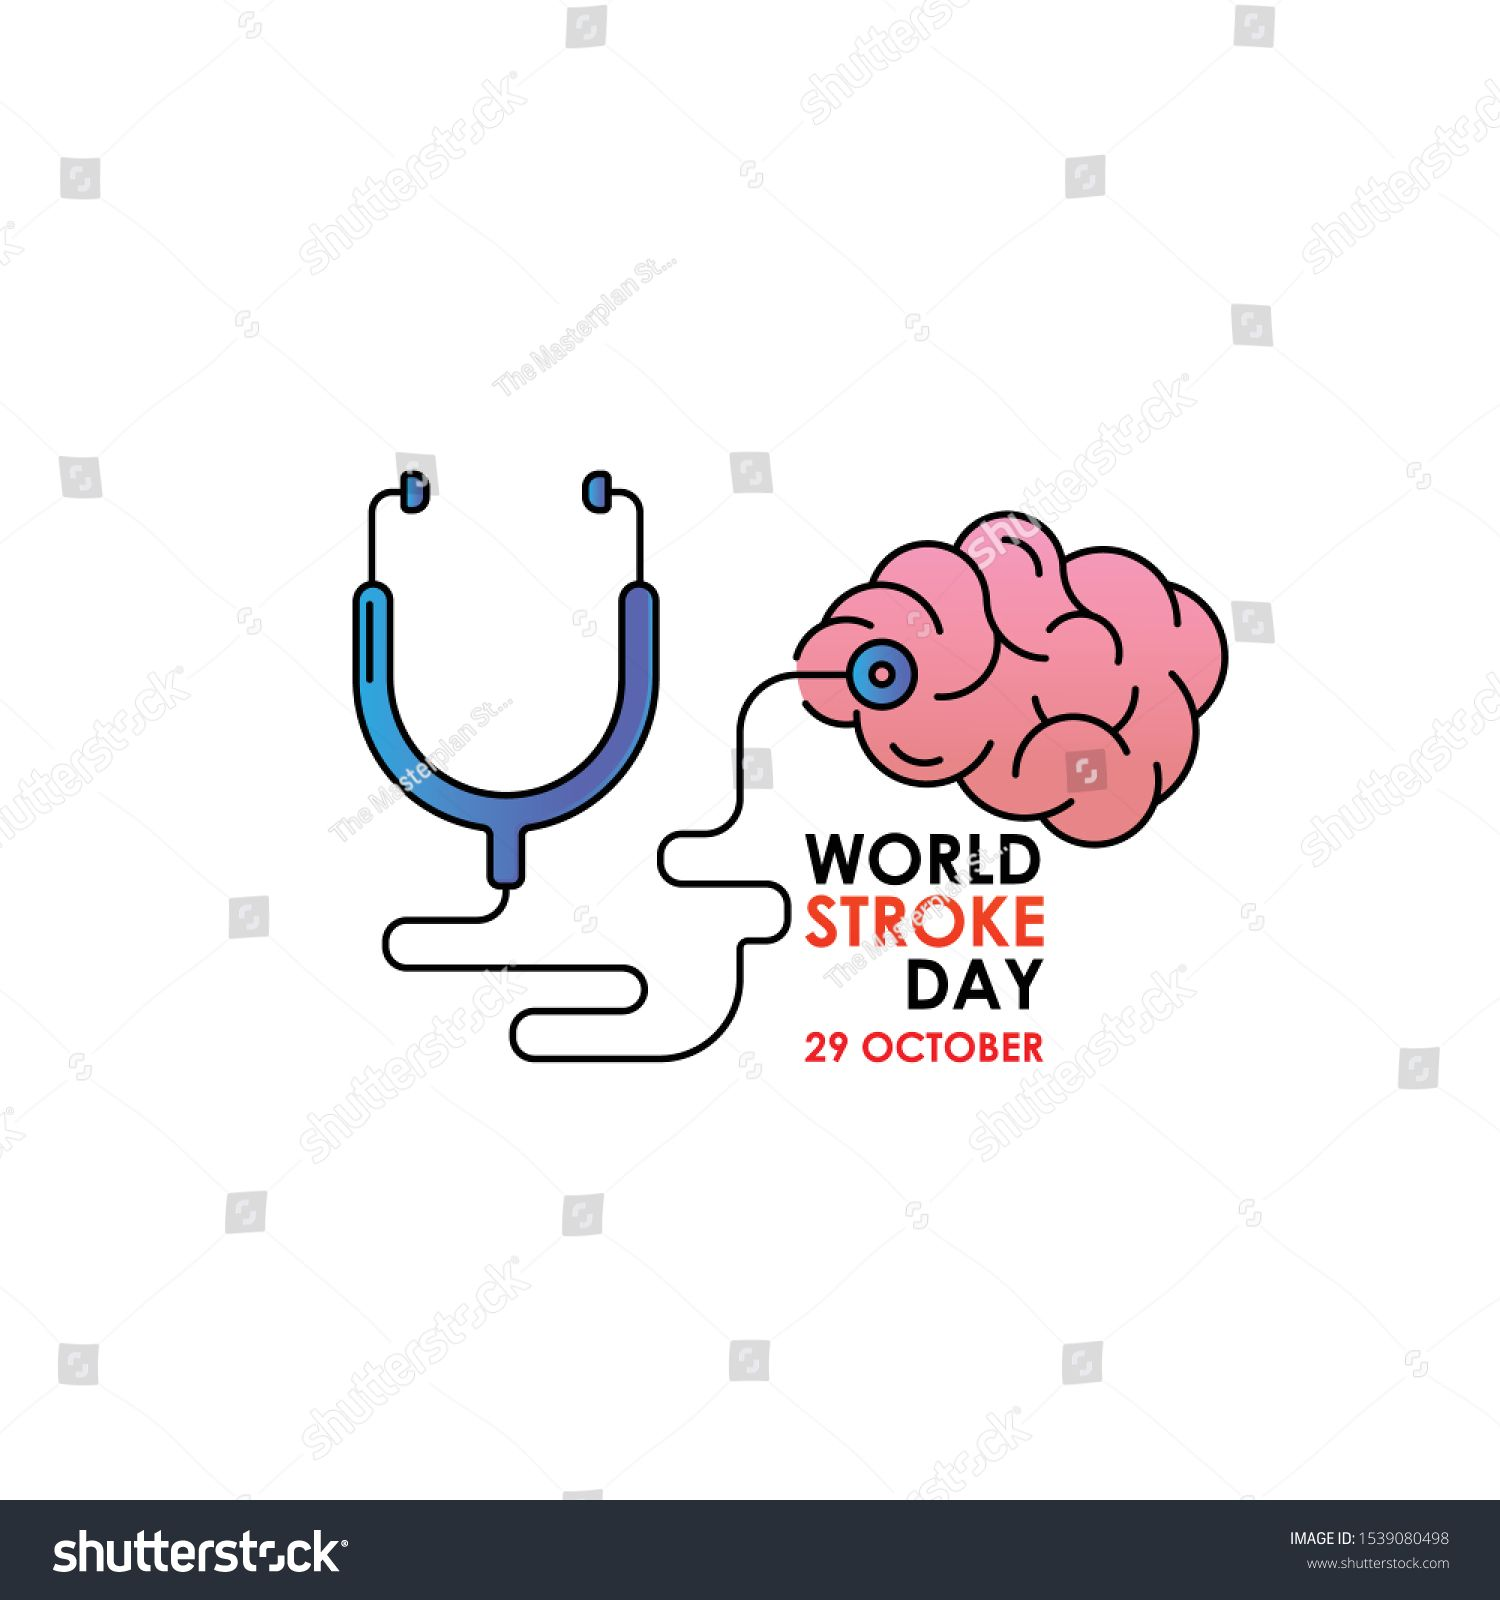 World Stroke Day Vector Logo Poster Illustration Of World Stroke Day On October 29th Health In 2020 World Stroke Day Infographic Design Template Awareness Campaign